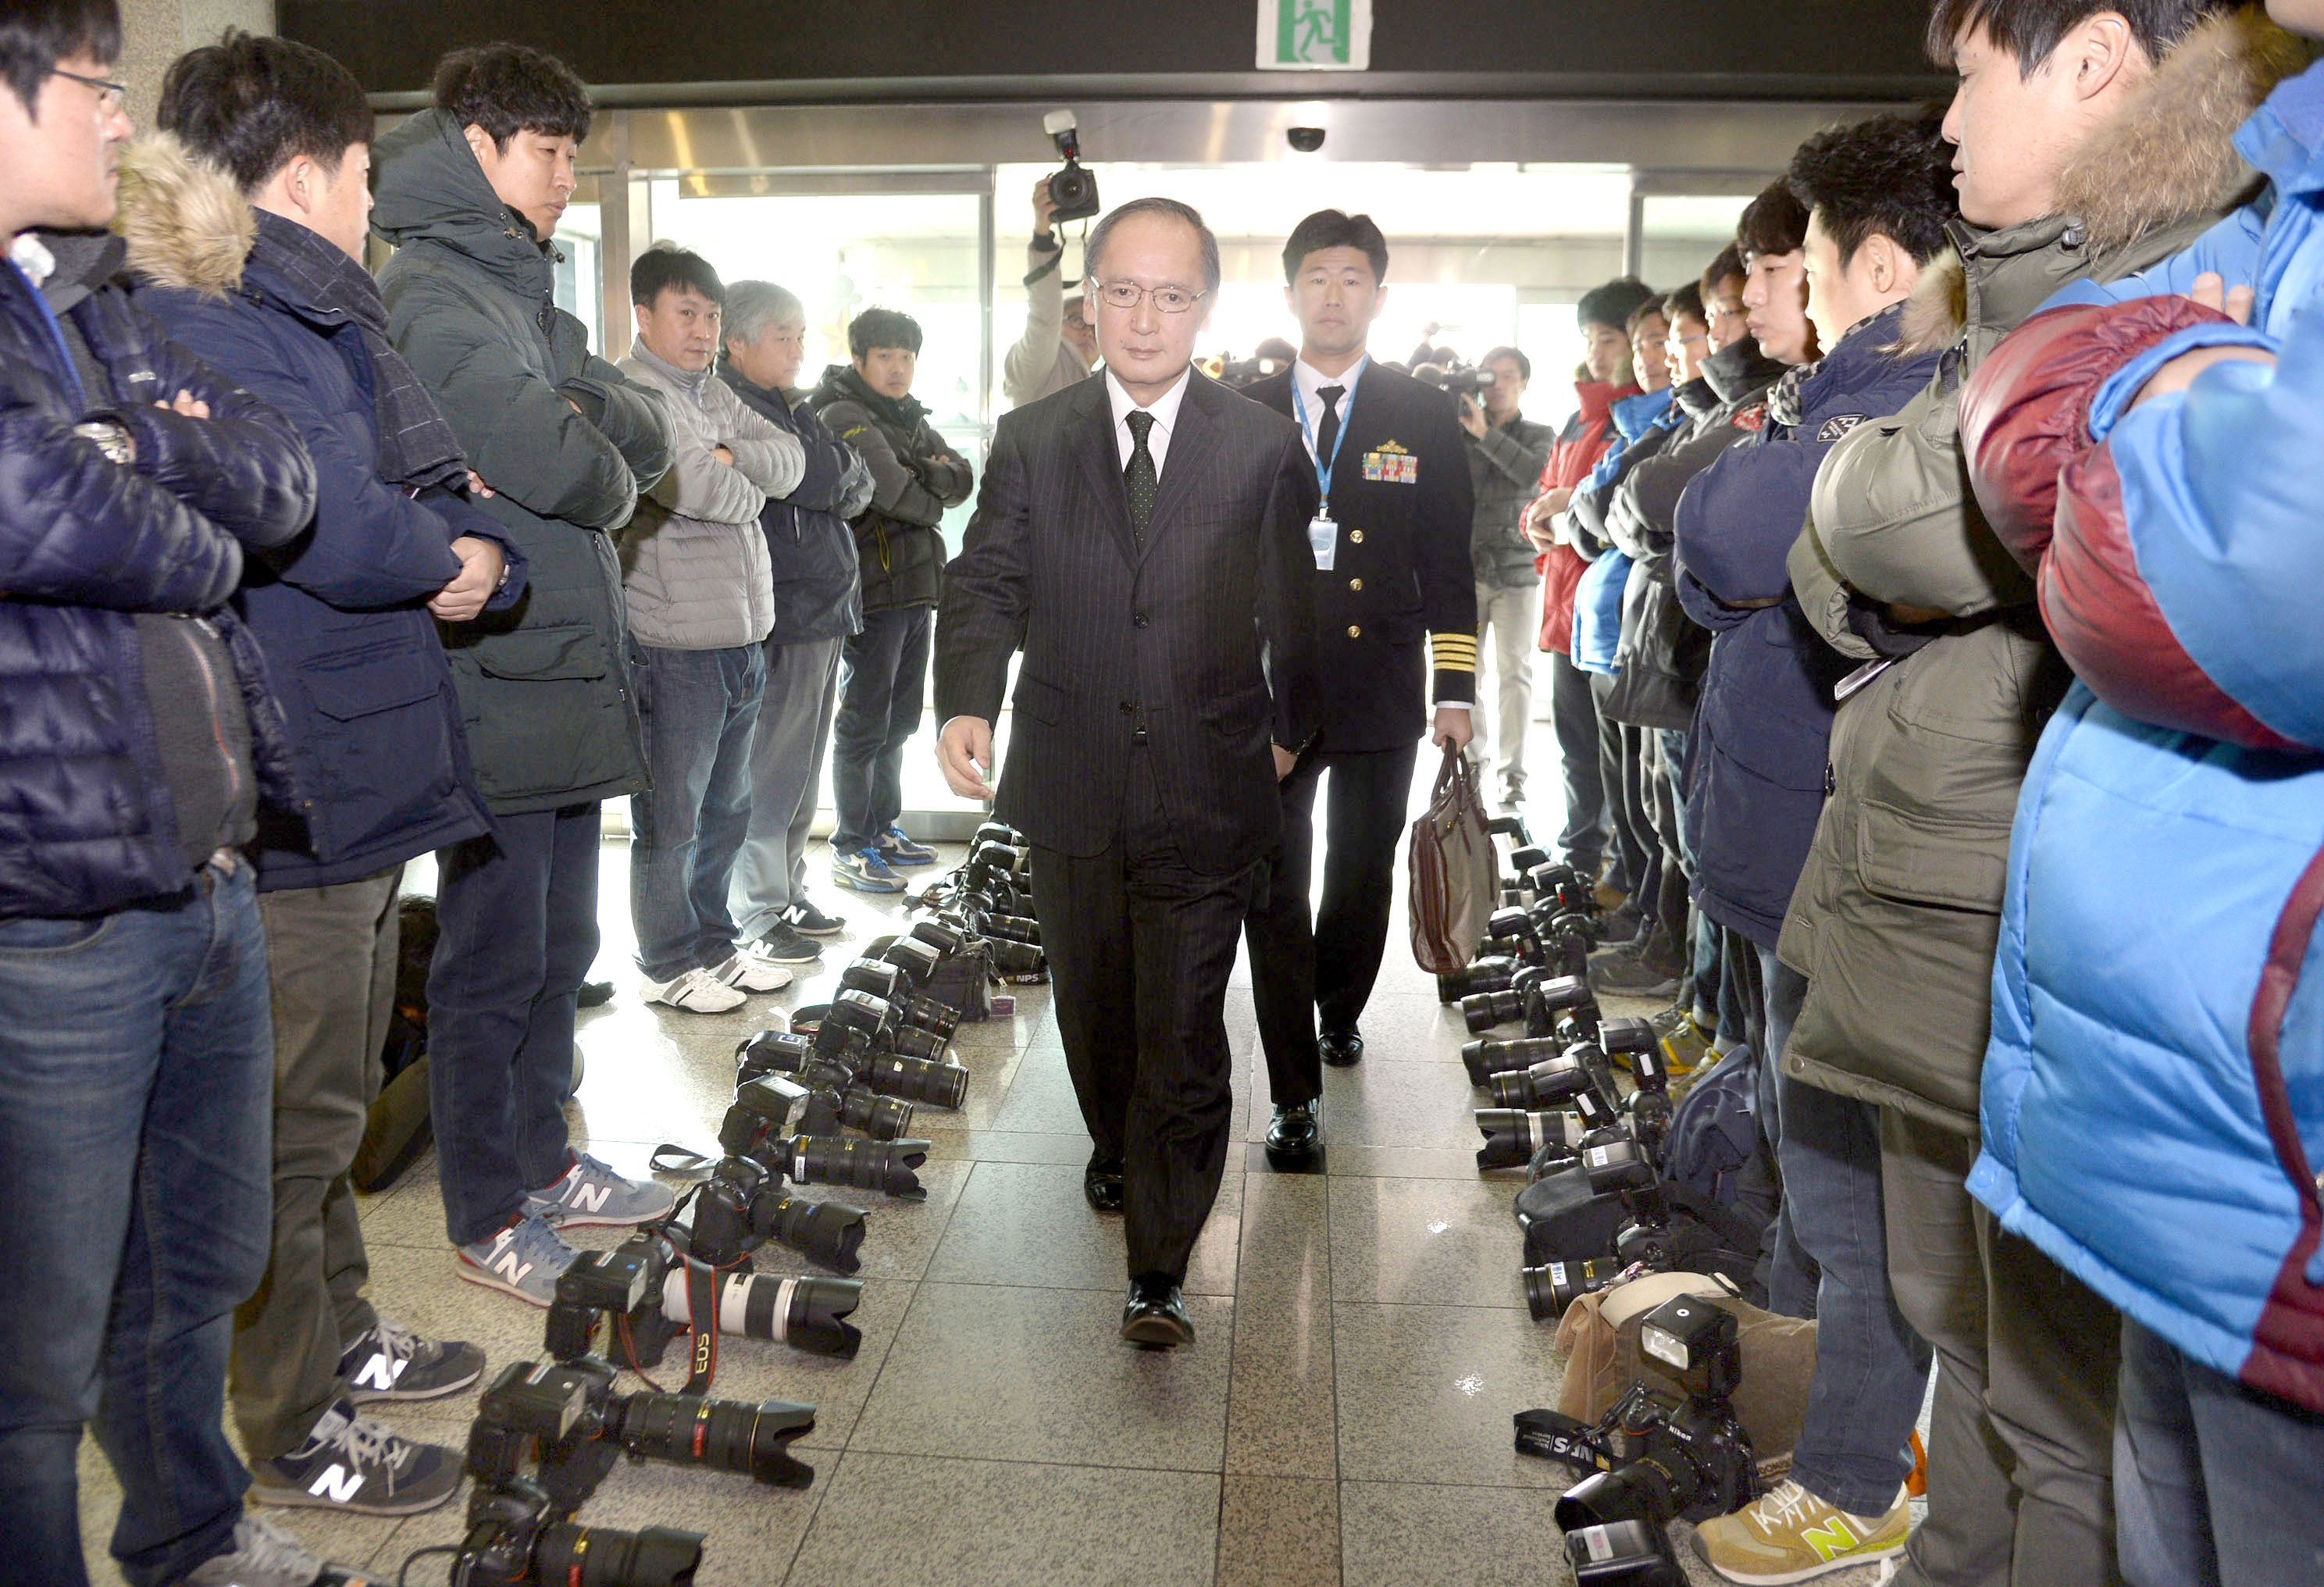 S. Korea, Japan sign pact on military intelligence sharing